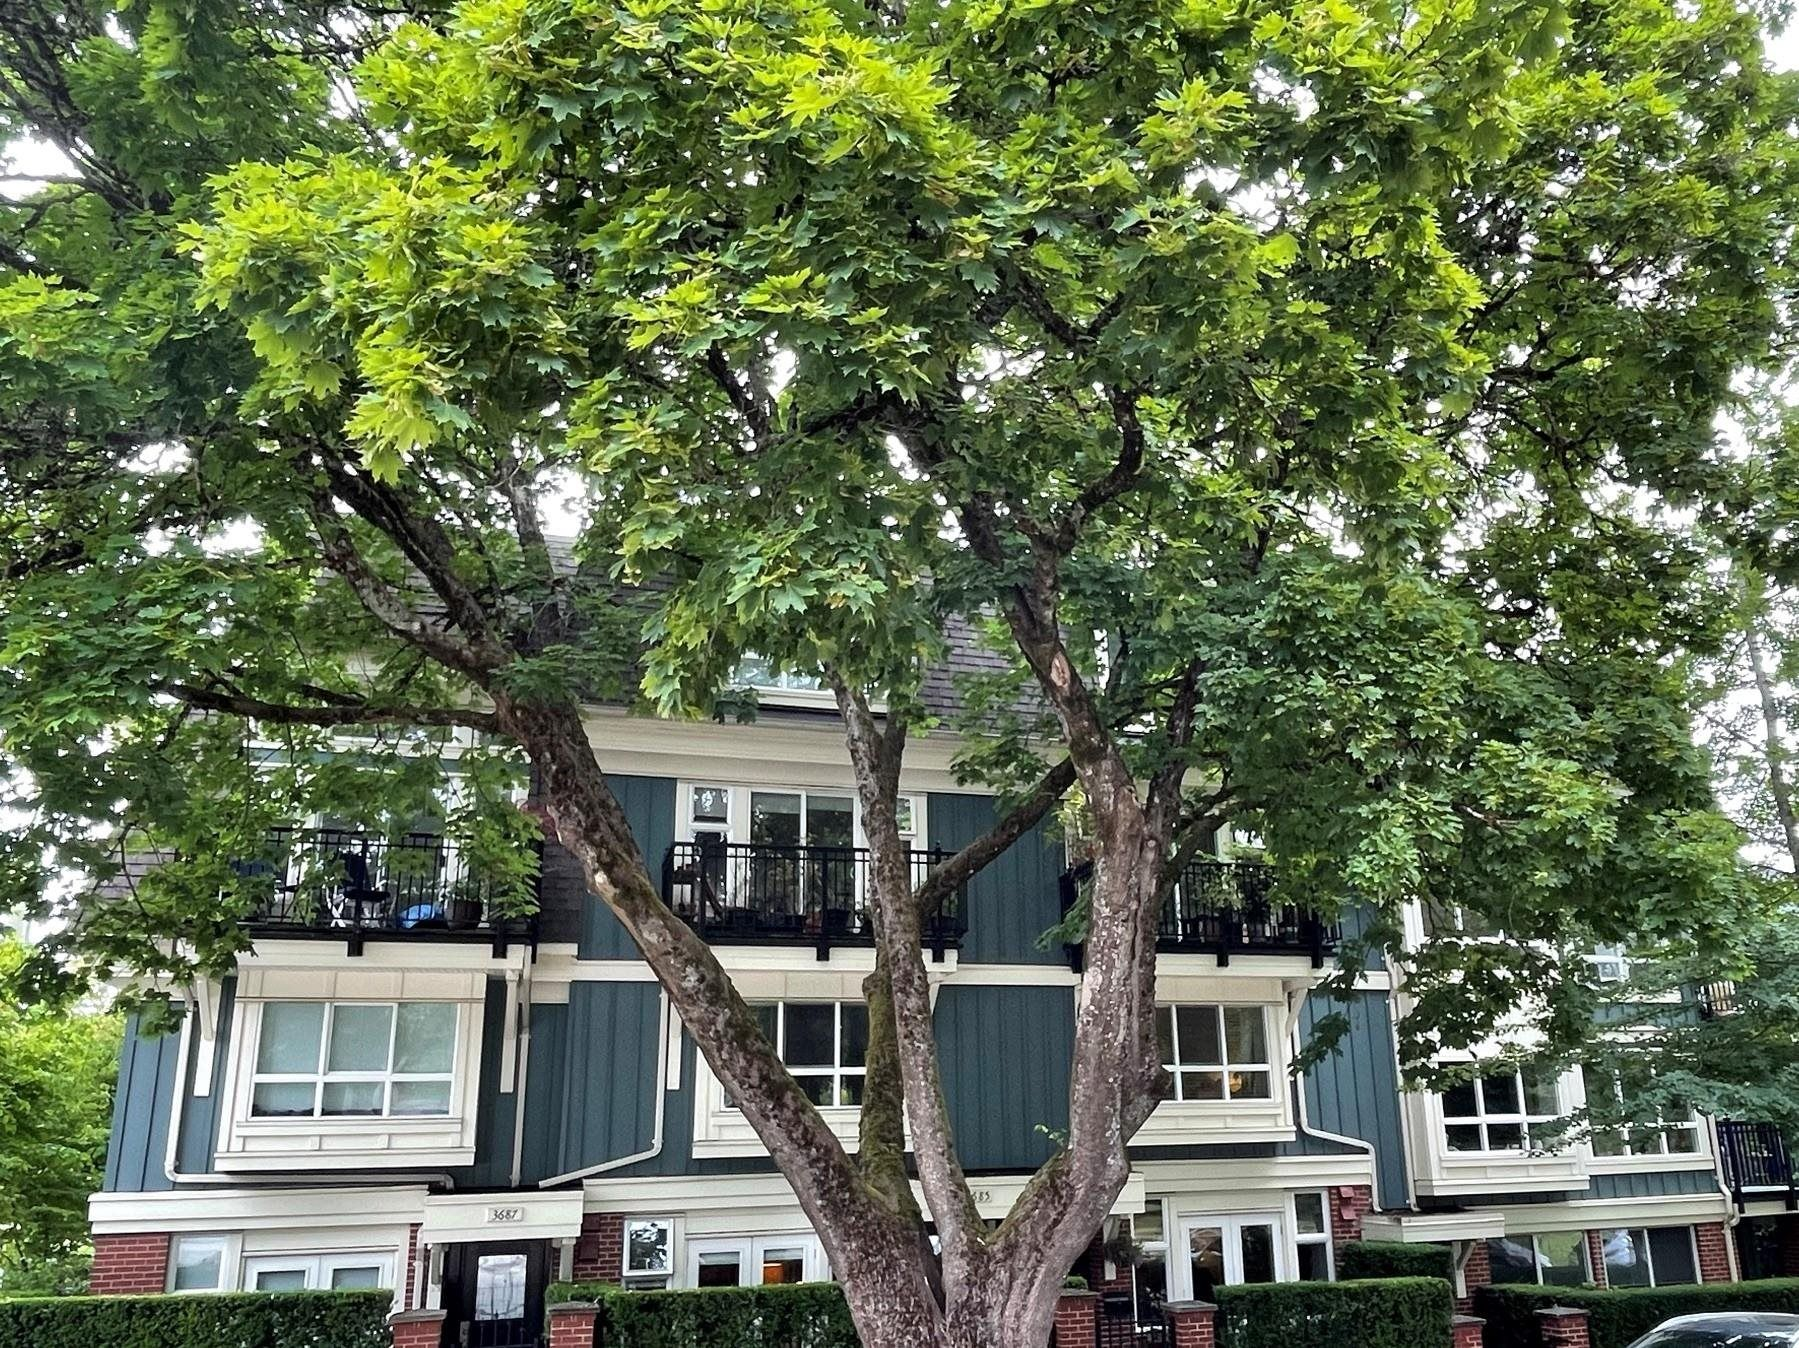 """Main Photo: 3685 W 12TH Avenue in Vancouver: Kitsilano Townhouse for sale in """"TWENTY ON THE PARK"""" (Vancouver West)  : MLS®# R2622614"""